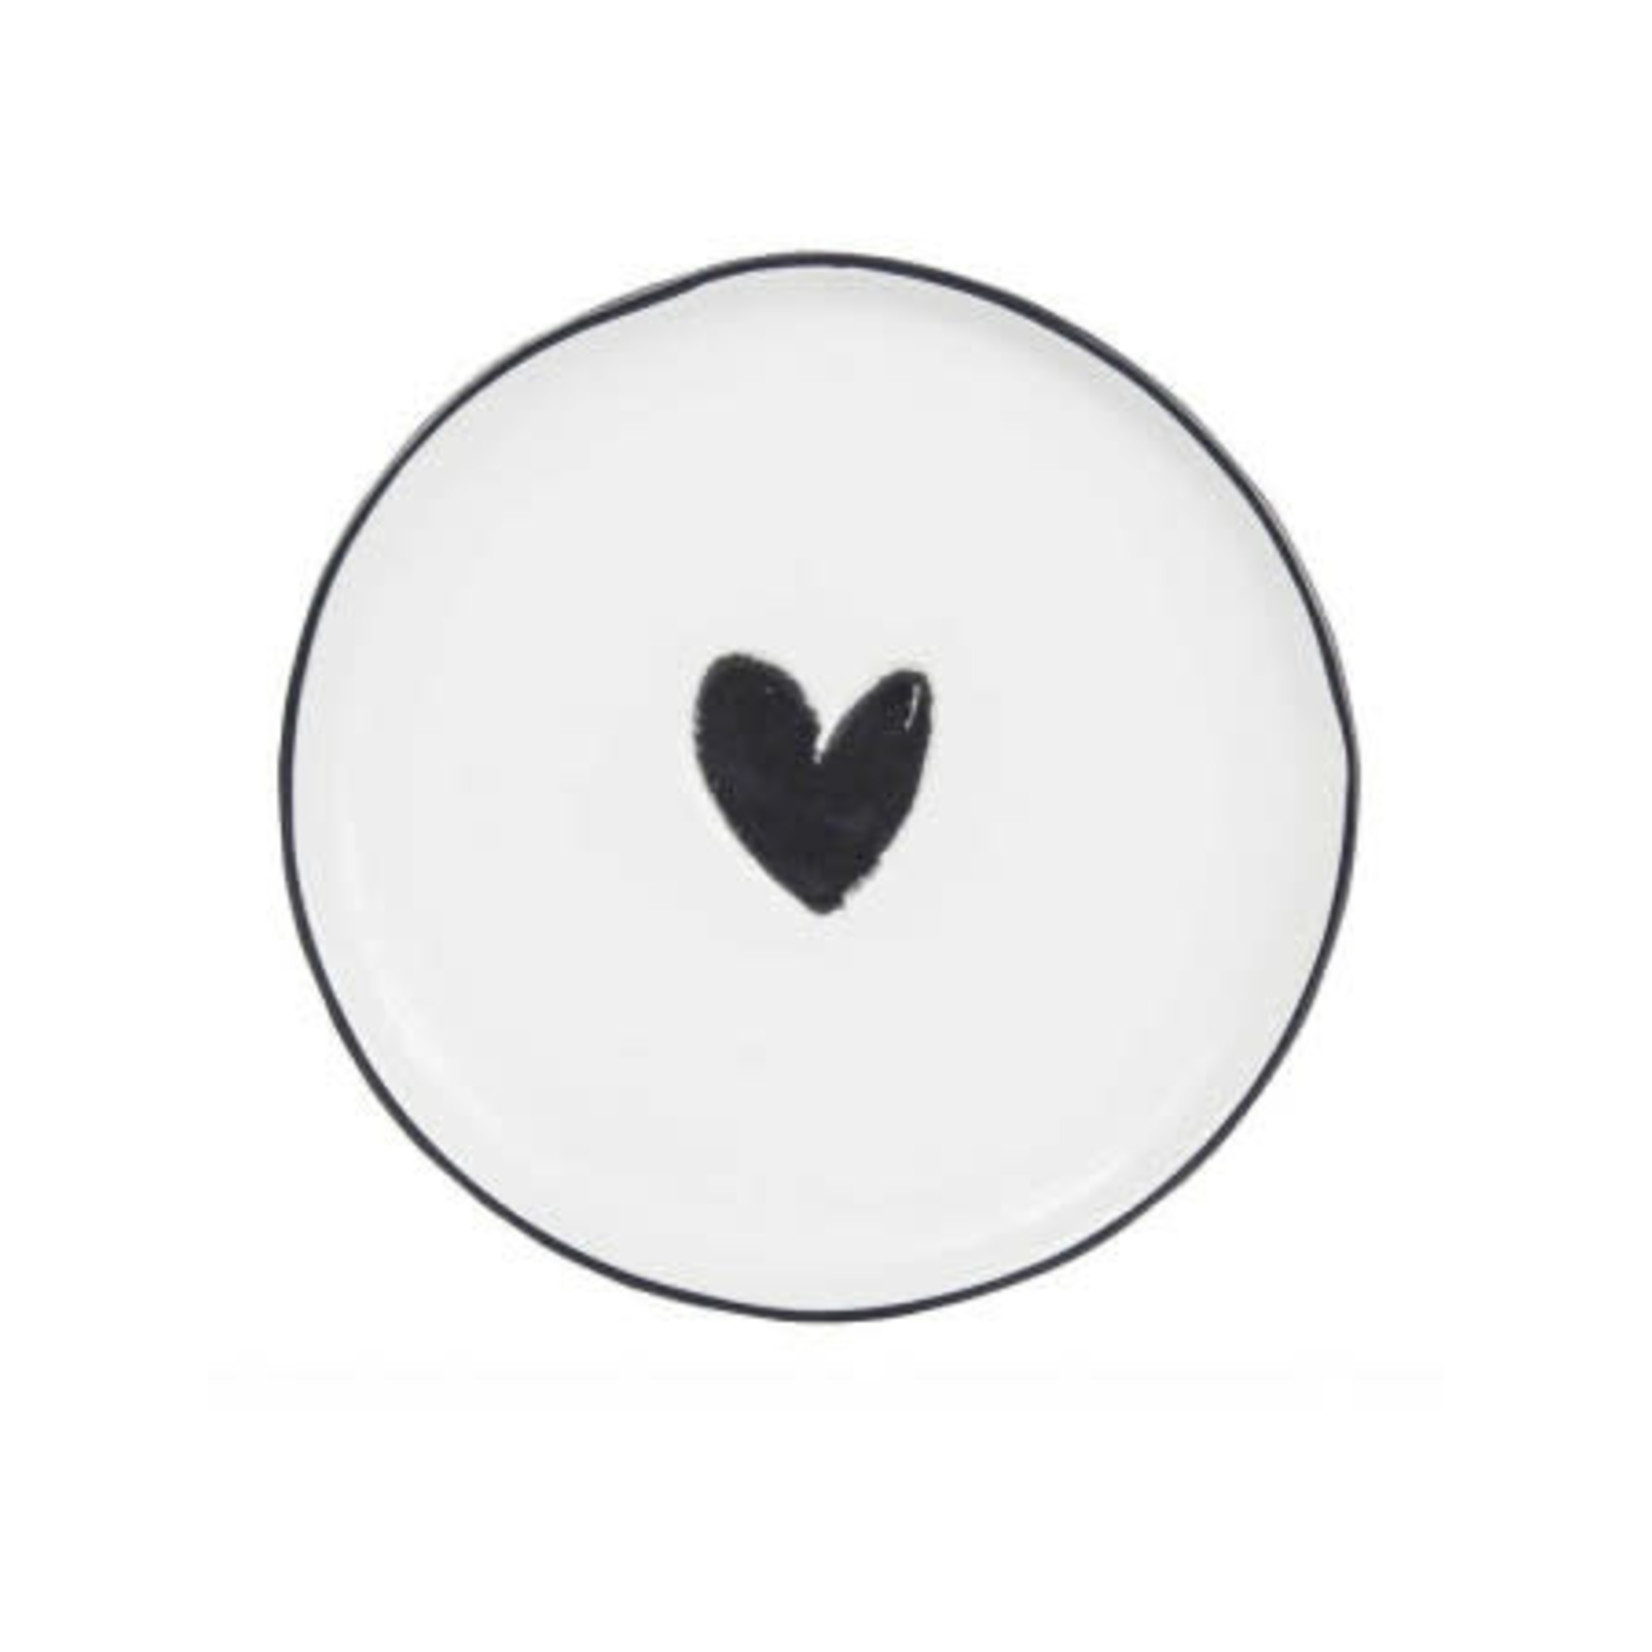 Bastion Collections Cake Plate 16 cm White Heart in Black